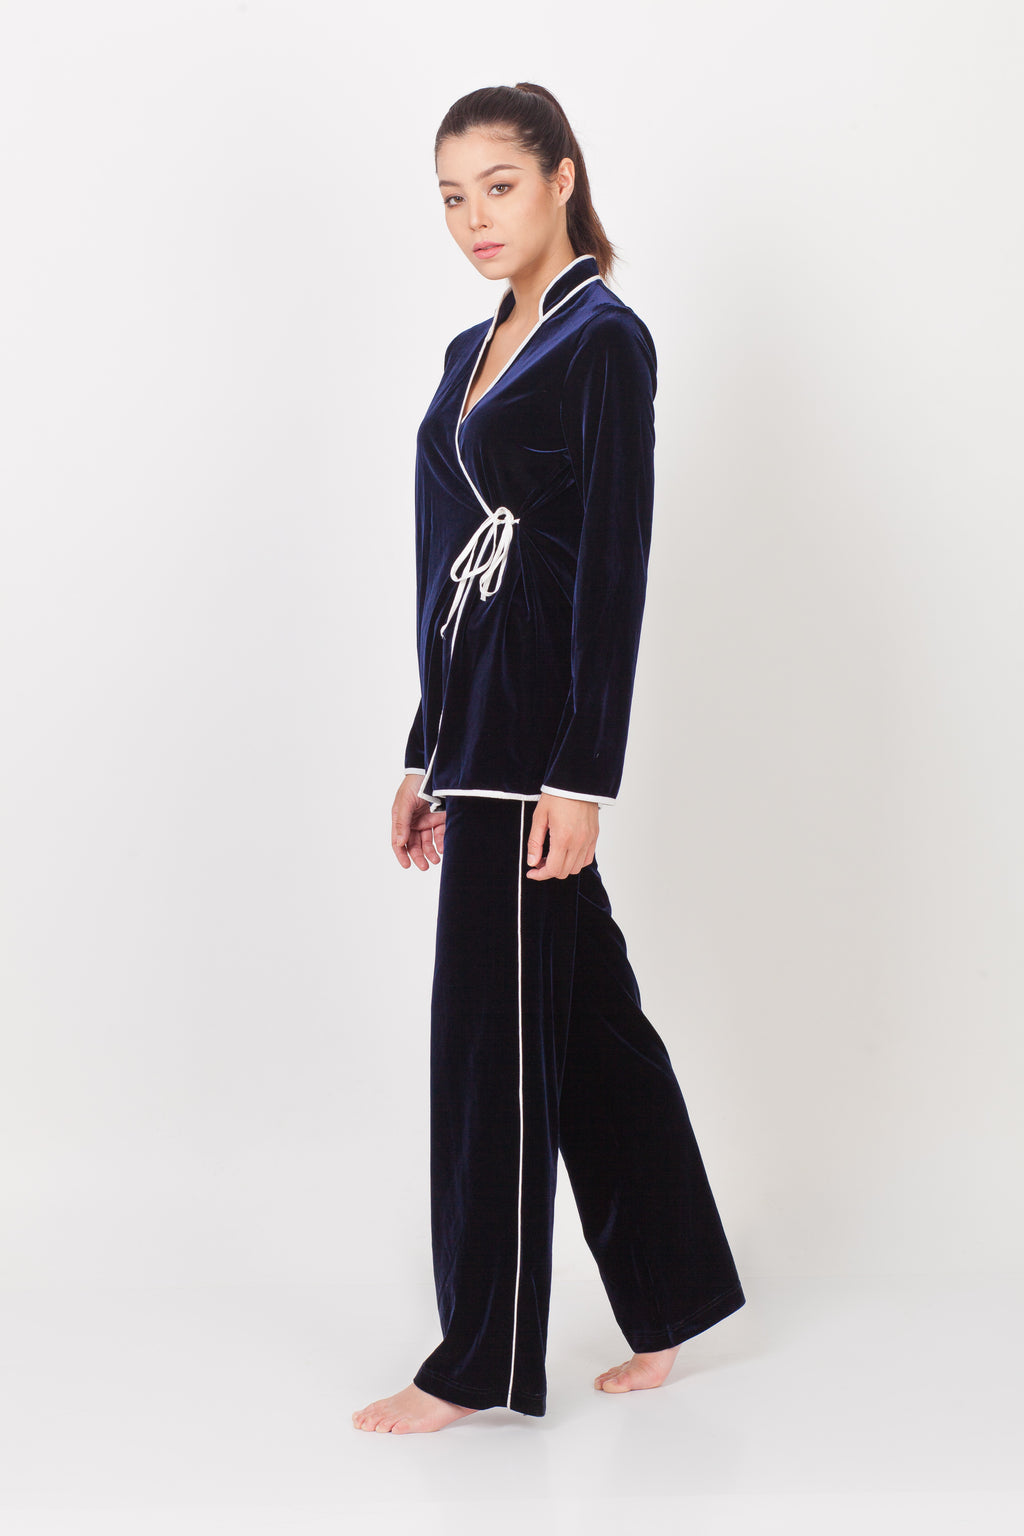 qipology wrap around qipao velvet pajamas